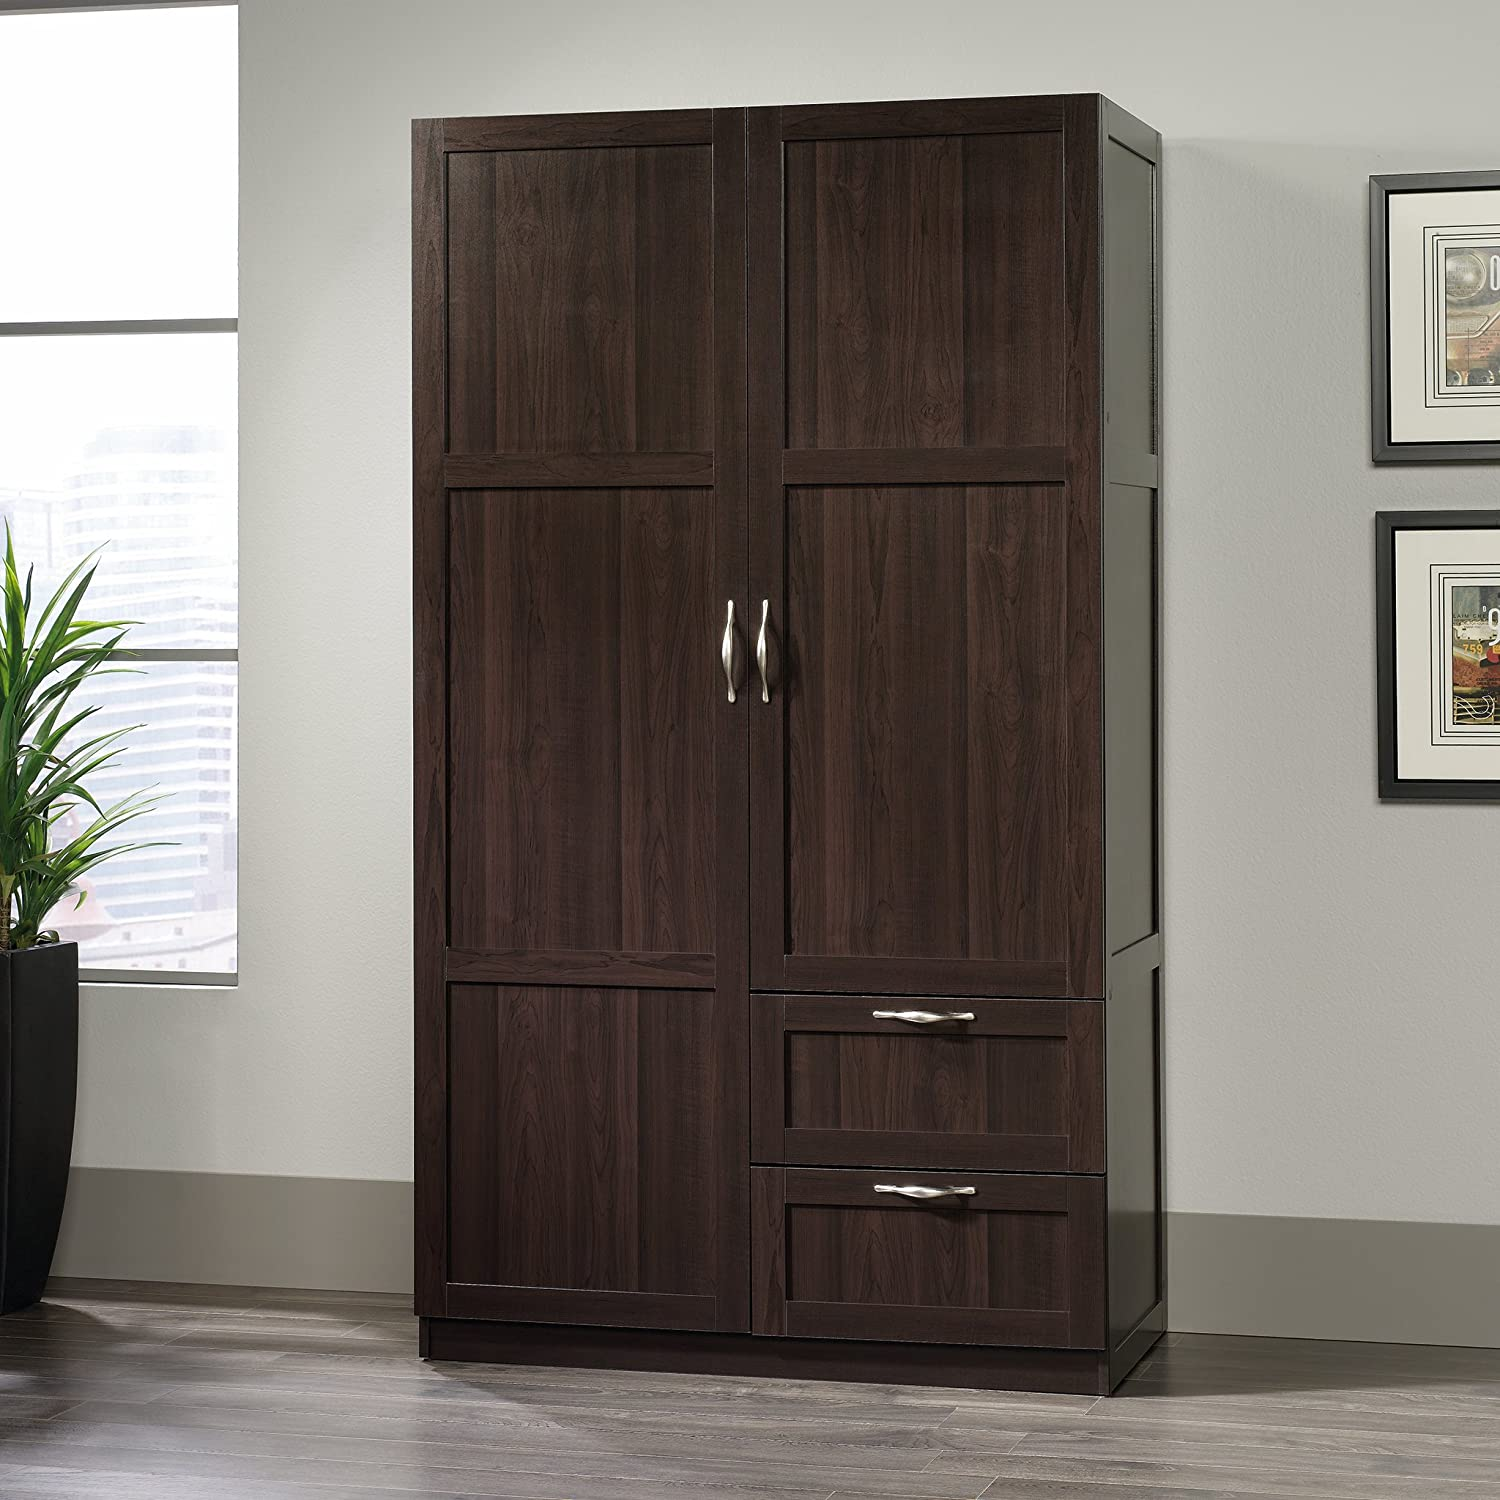 cabinet sauder dp highland kitchen com storage wardrobe oak beginnings dining inch amazon